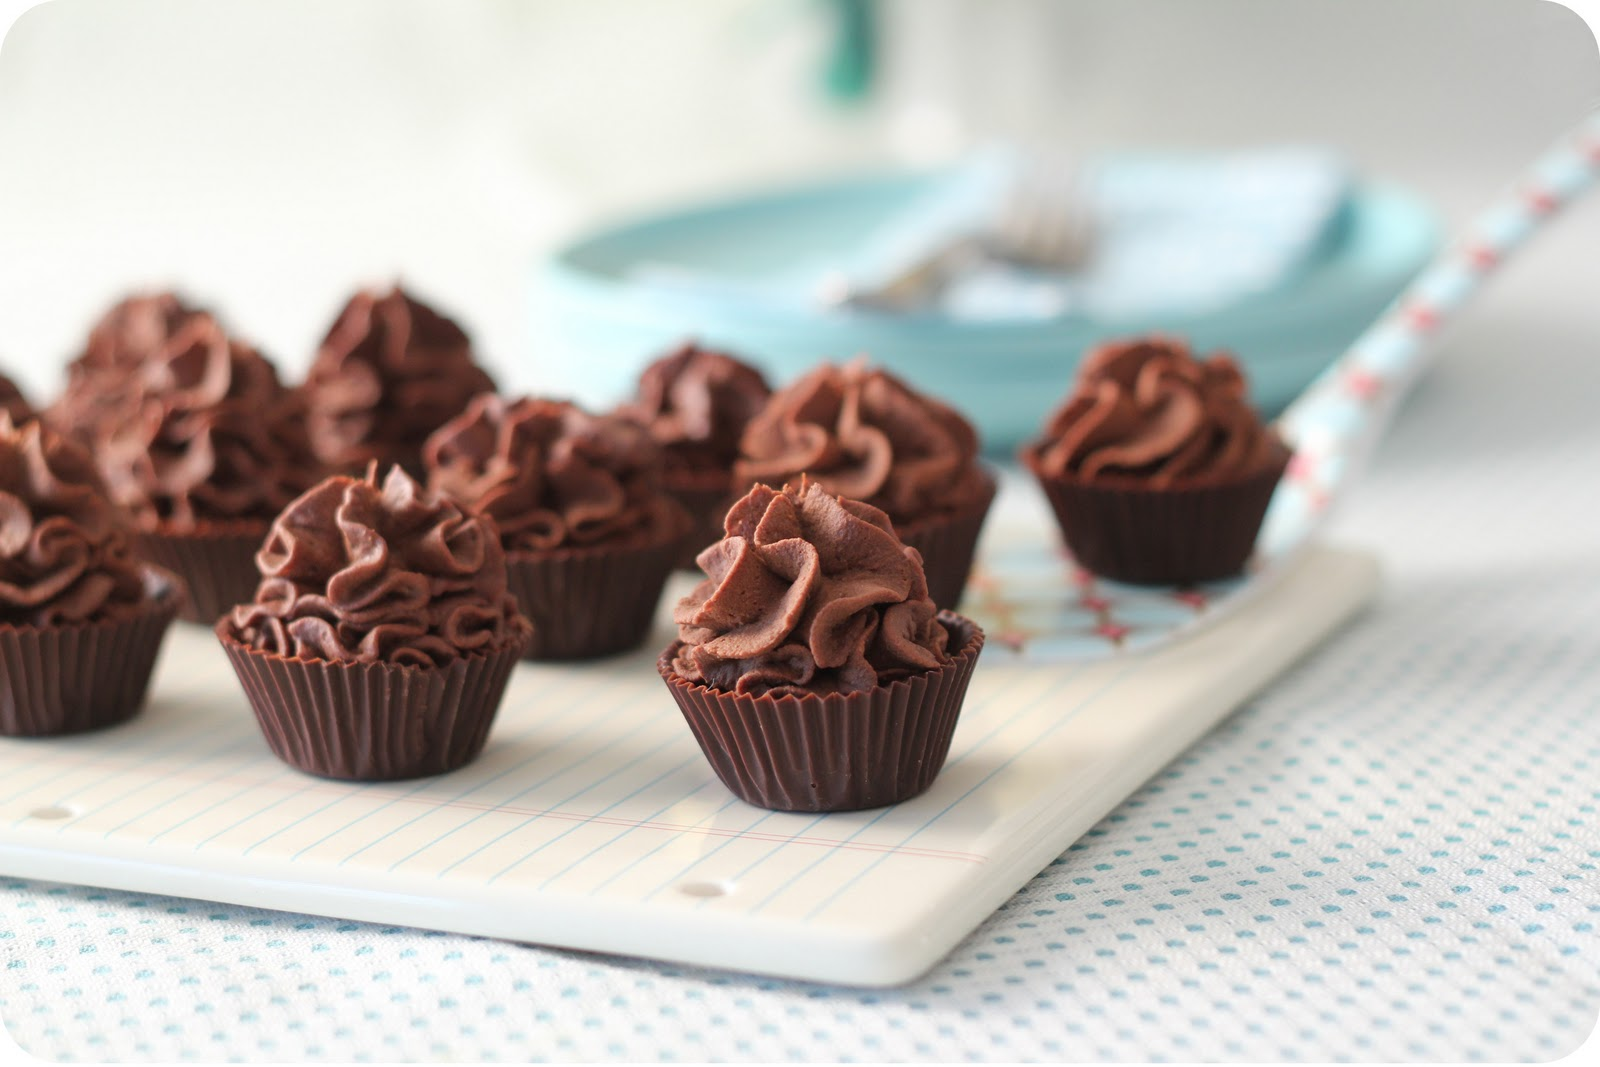 Dulce Delight: Chocolate mousse inside chocolate cups